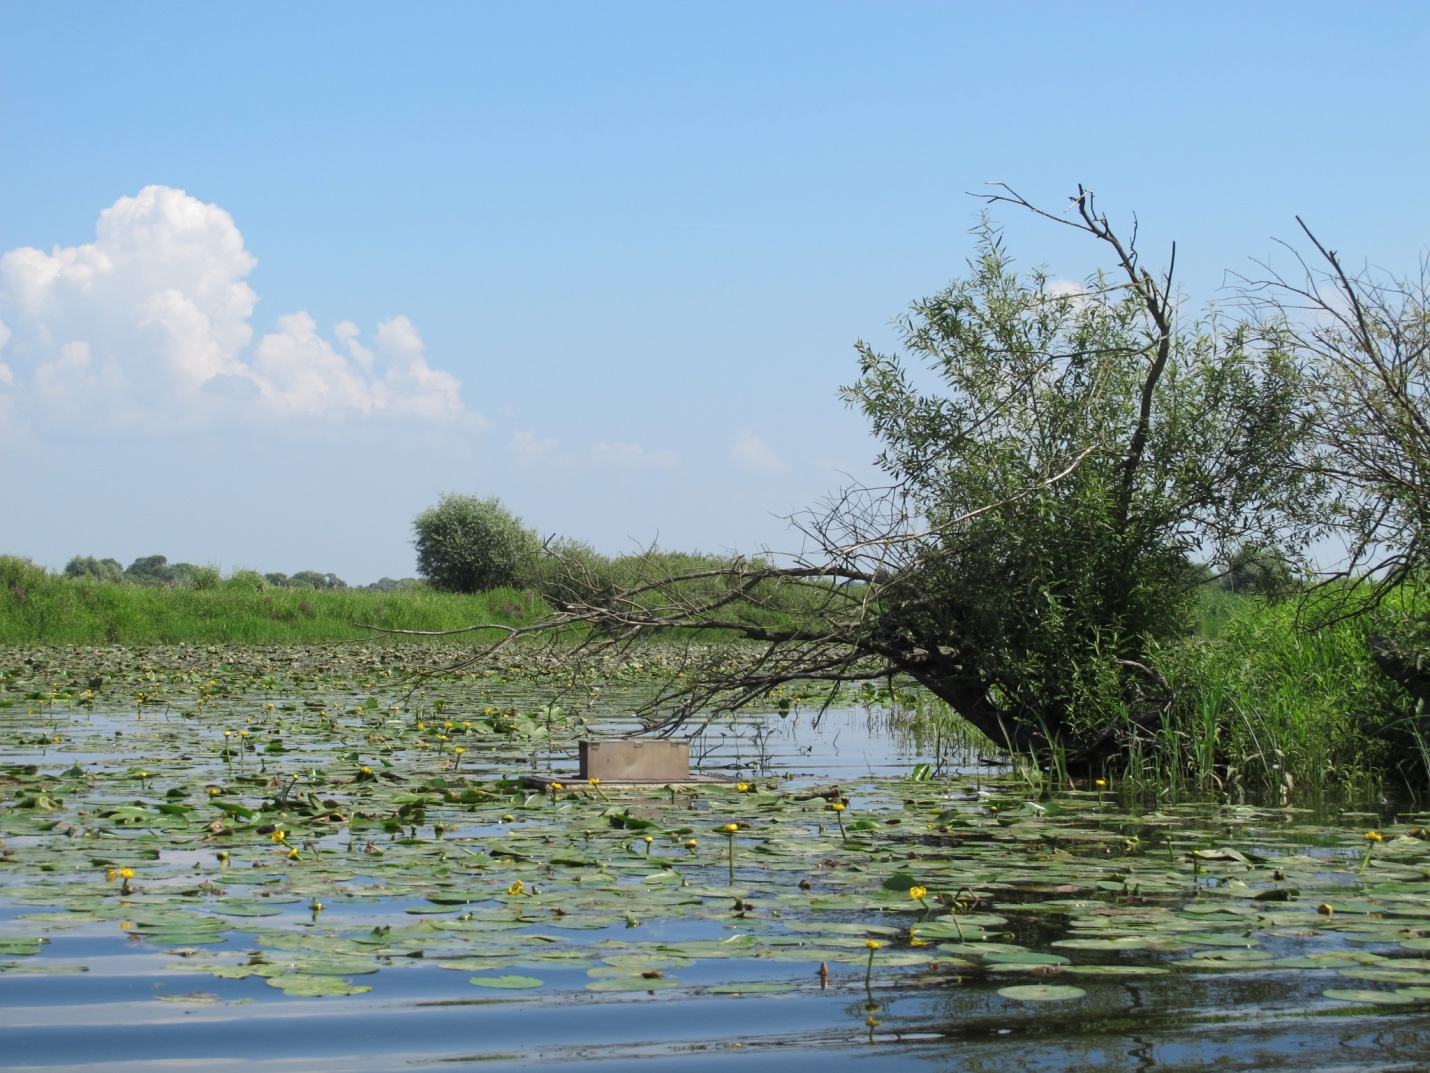 Terns are provided with floating island sanctuaries for their nests